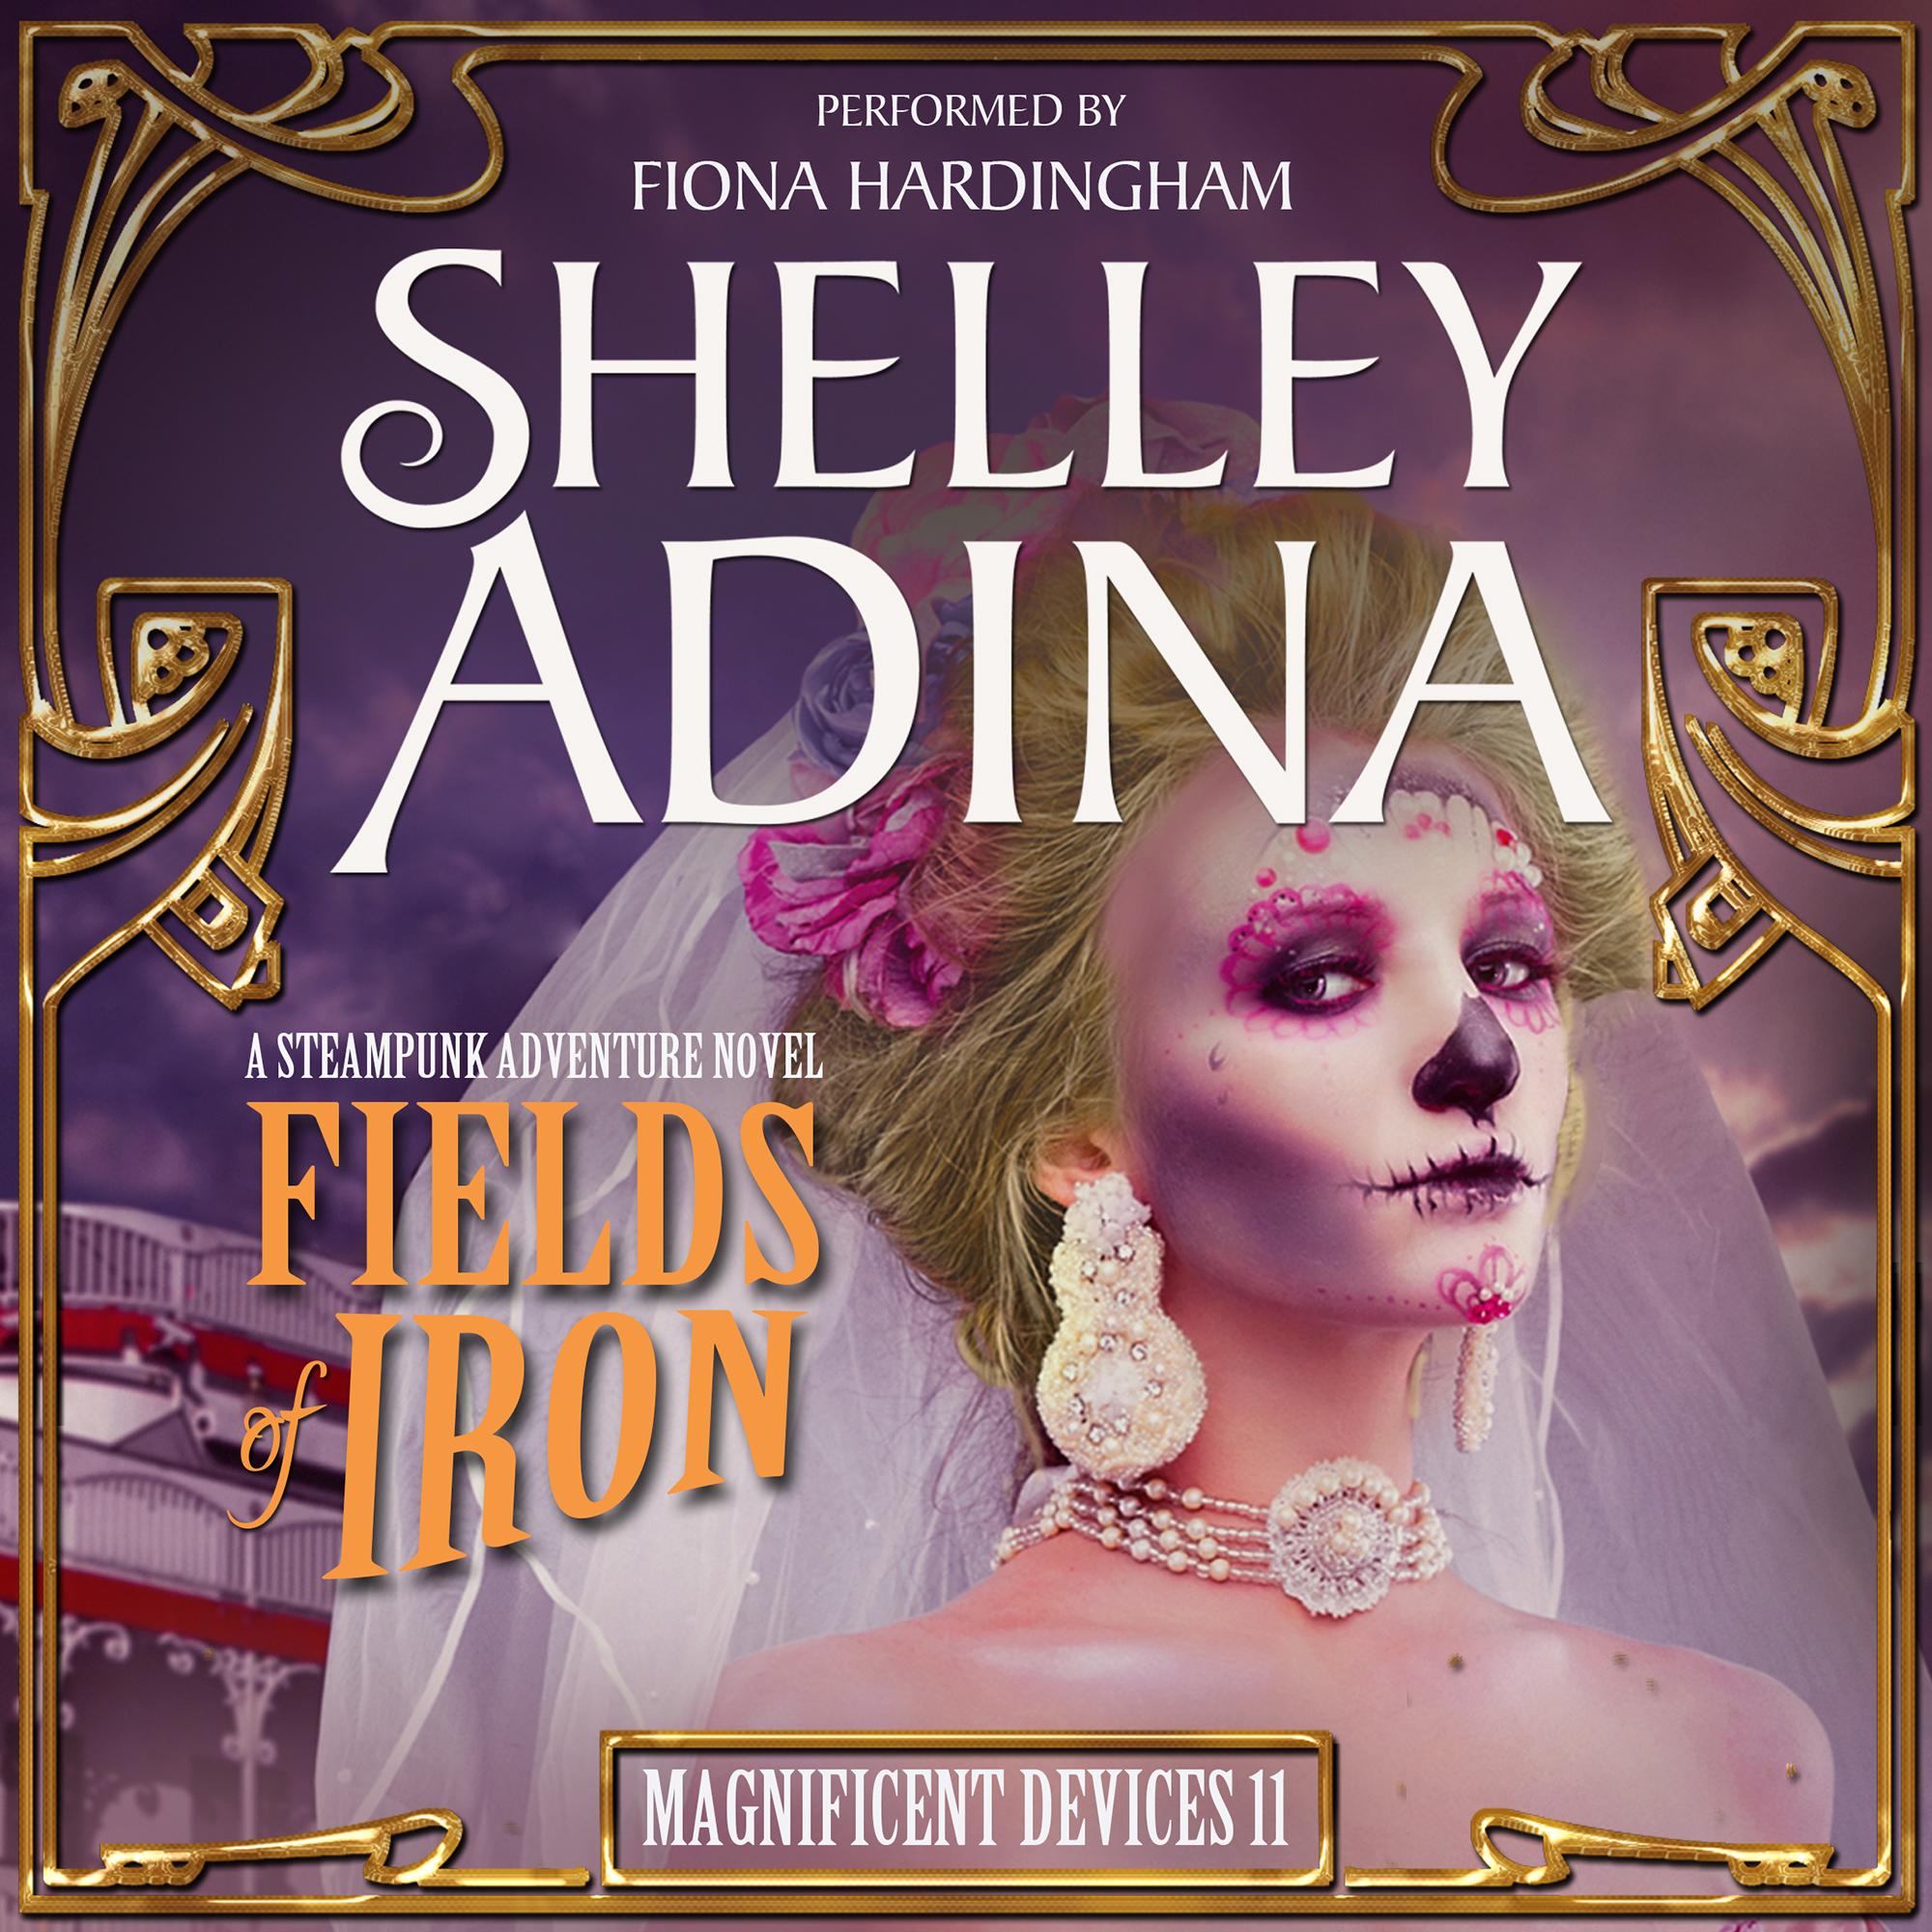 Fields of Iron by Shelley Adina